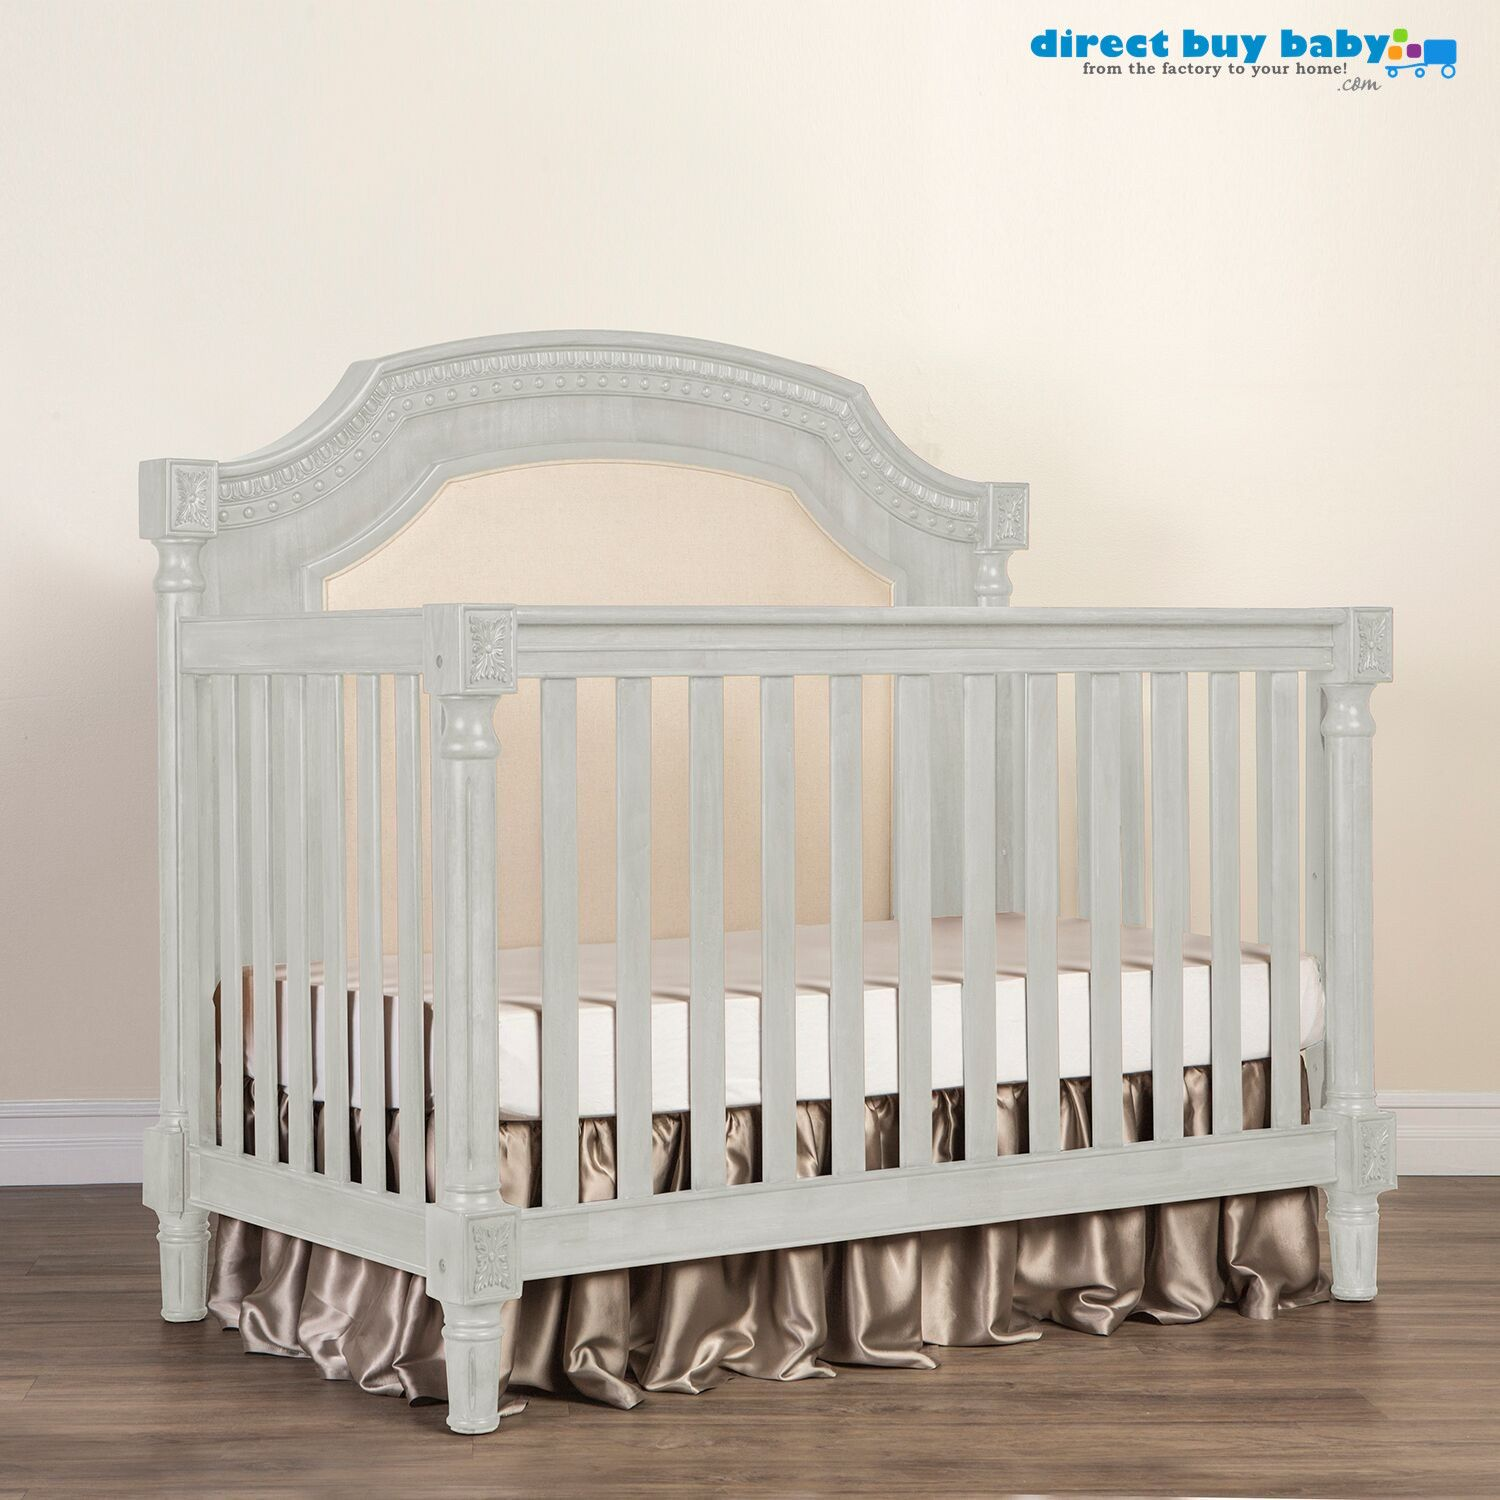 Wooden crib for sale las pinas - The Evolur Julienne Collection Directbuybaby Features A Gorgeous Upholstered Baby Crib For Your Baby Nursery